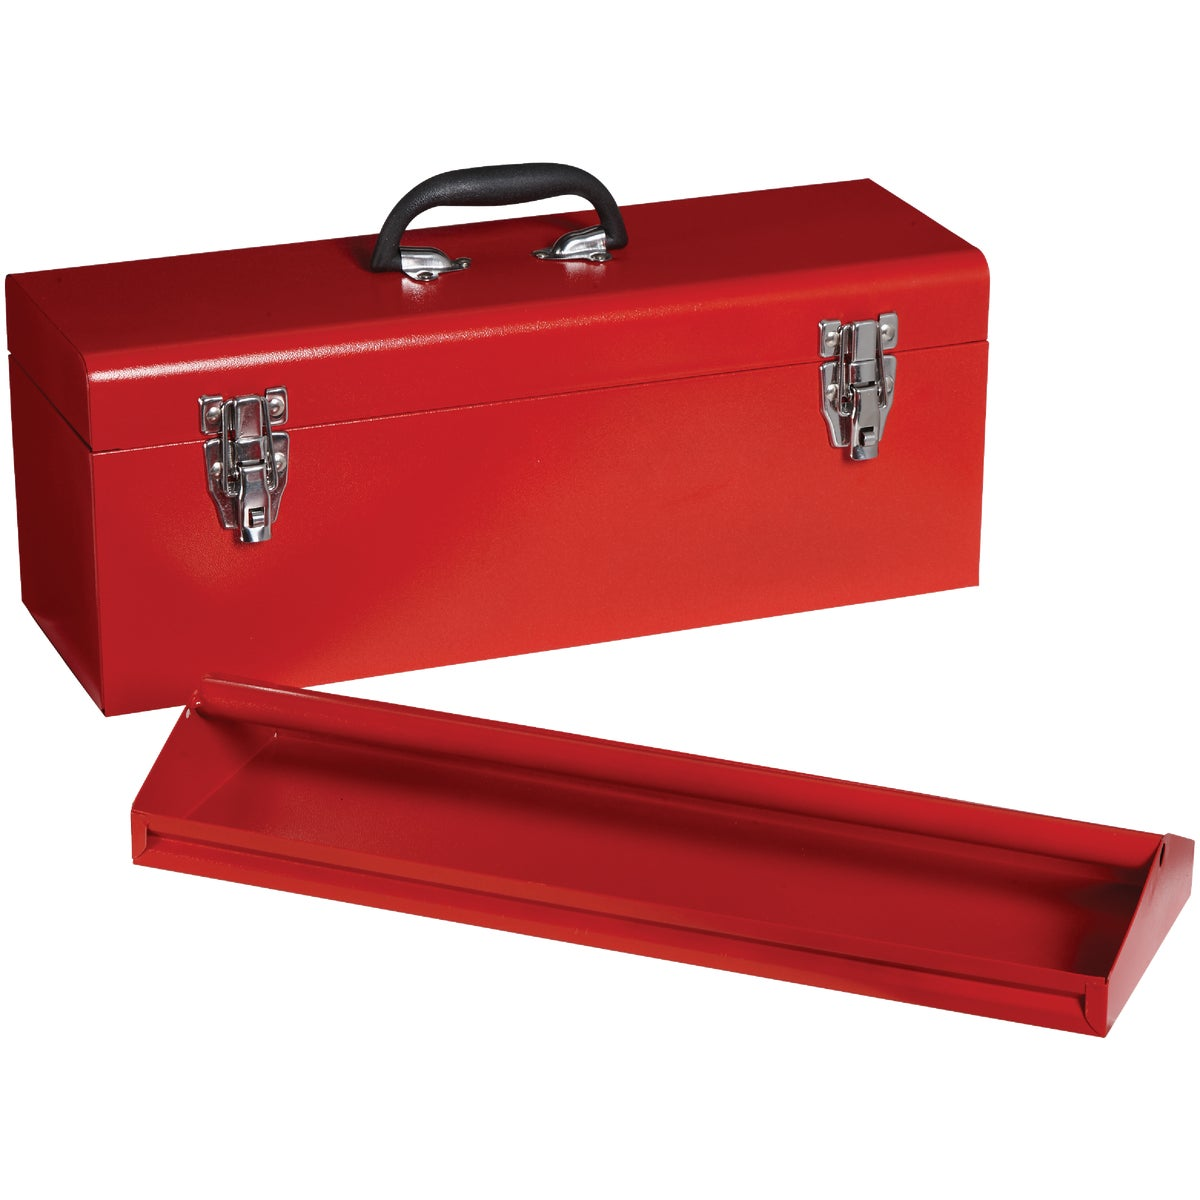 "20"" METAL TOOLBOX - 398624 by Do it Best GS"